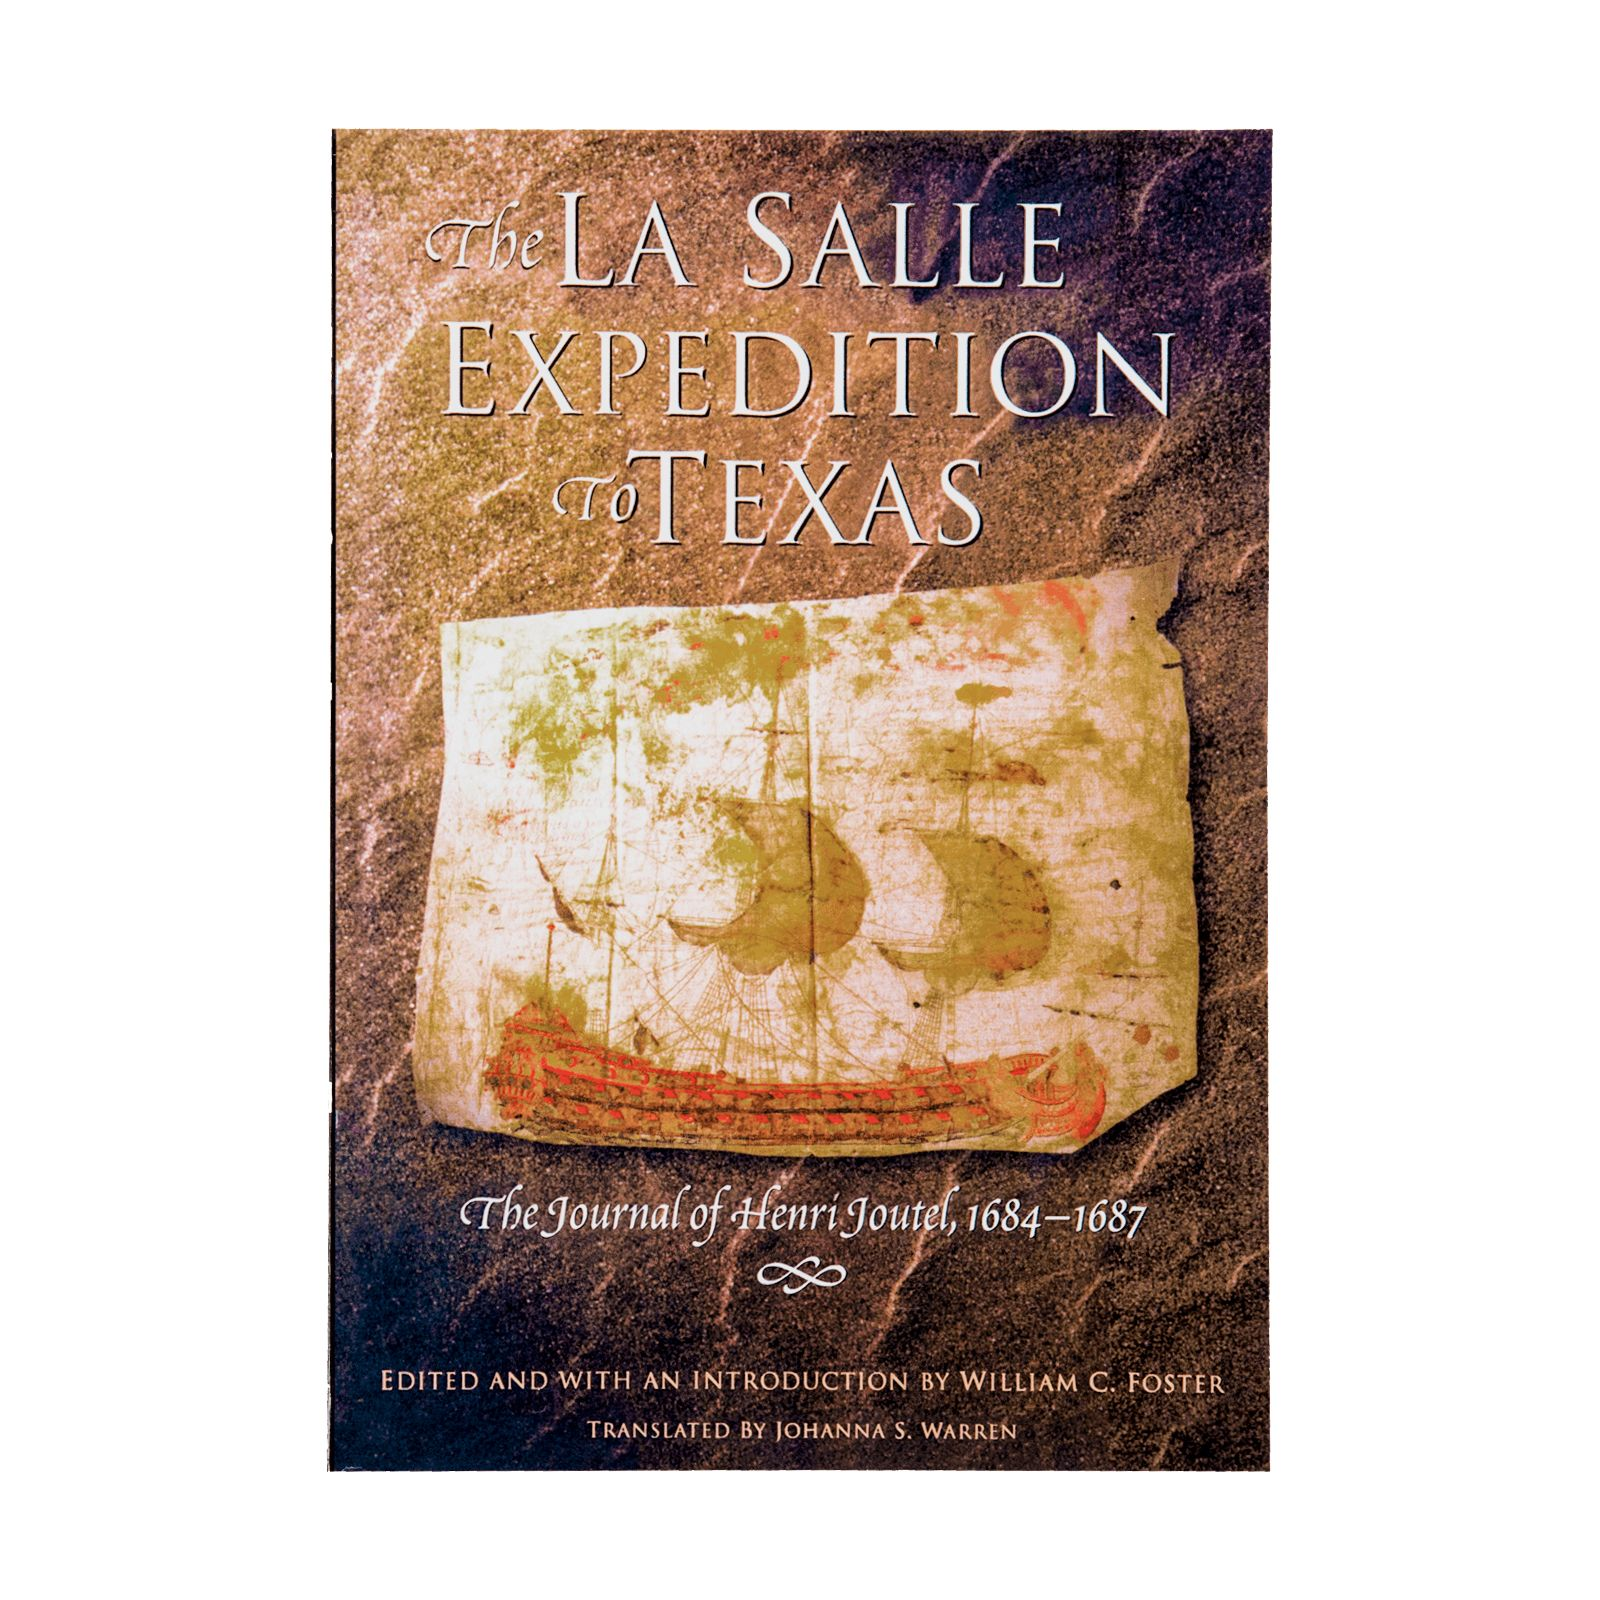 The LaSalle Expedition to Texas: The Journal of Henri Joutel, 1684-1687